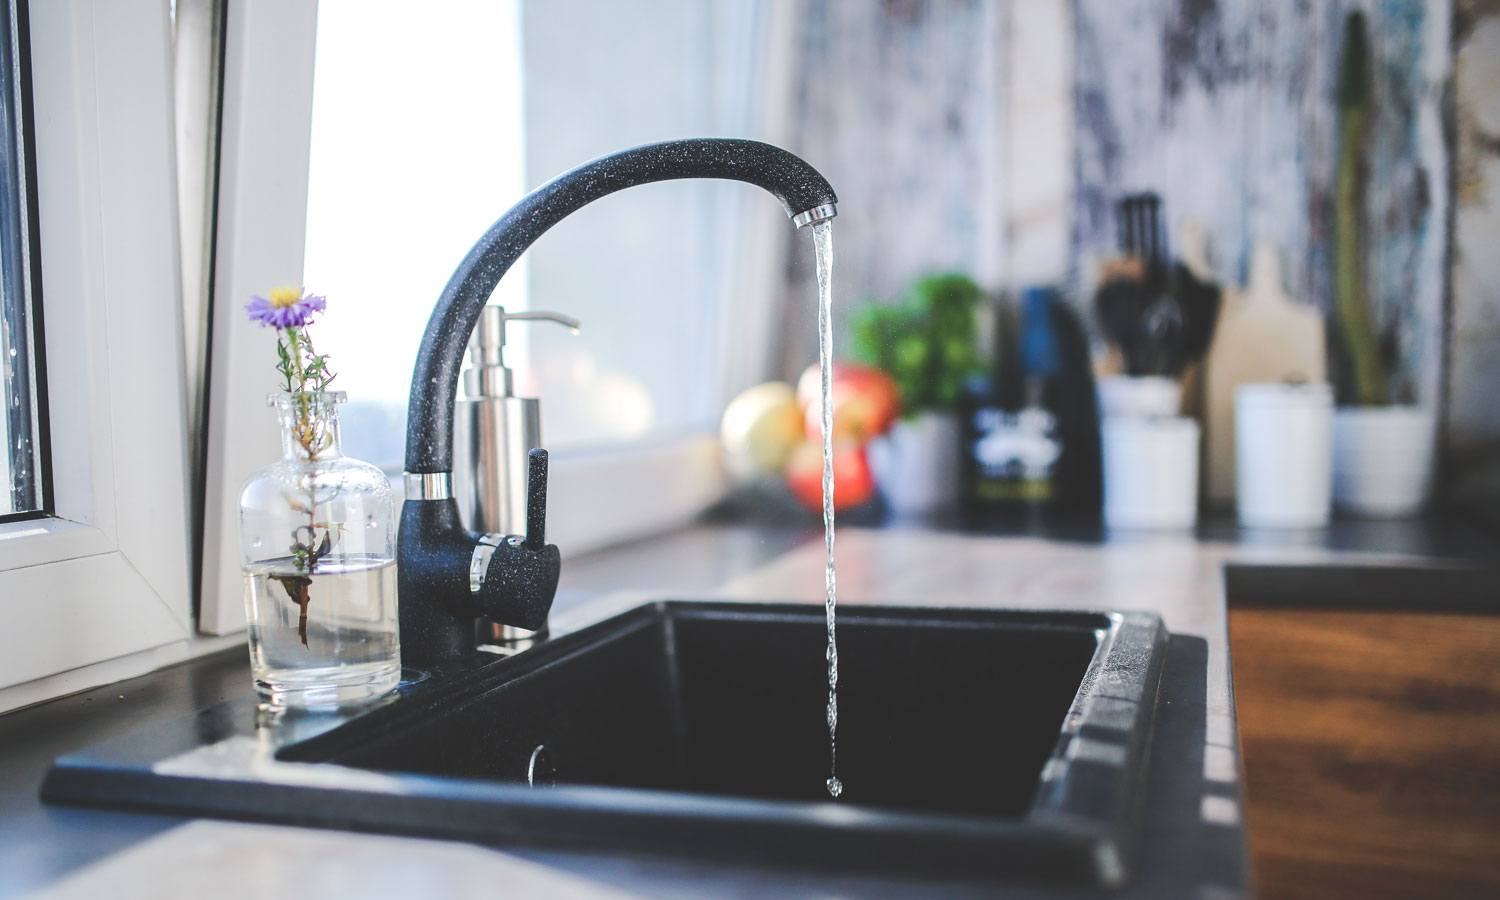 running faucet in kitchen